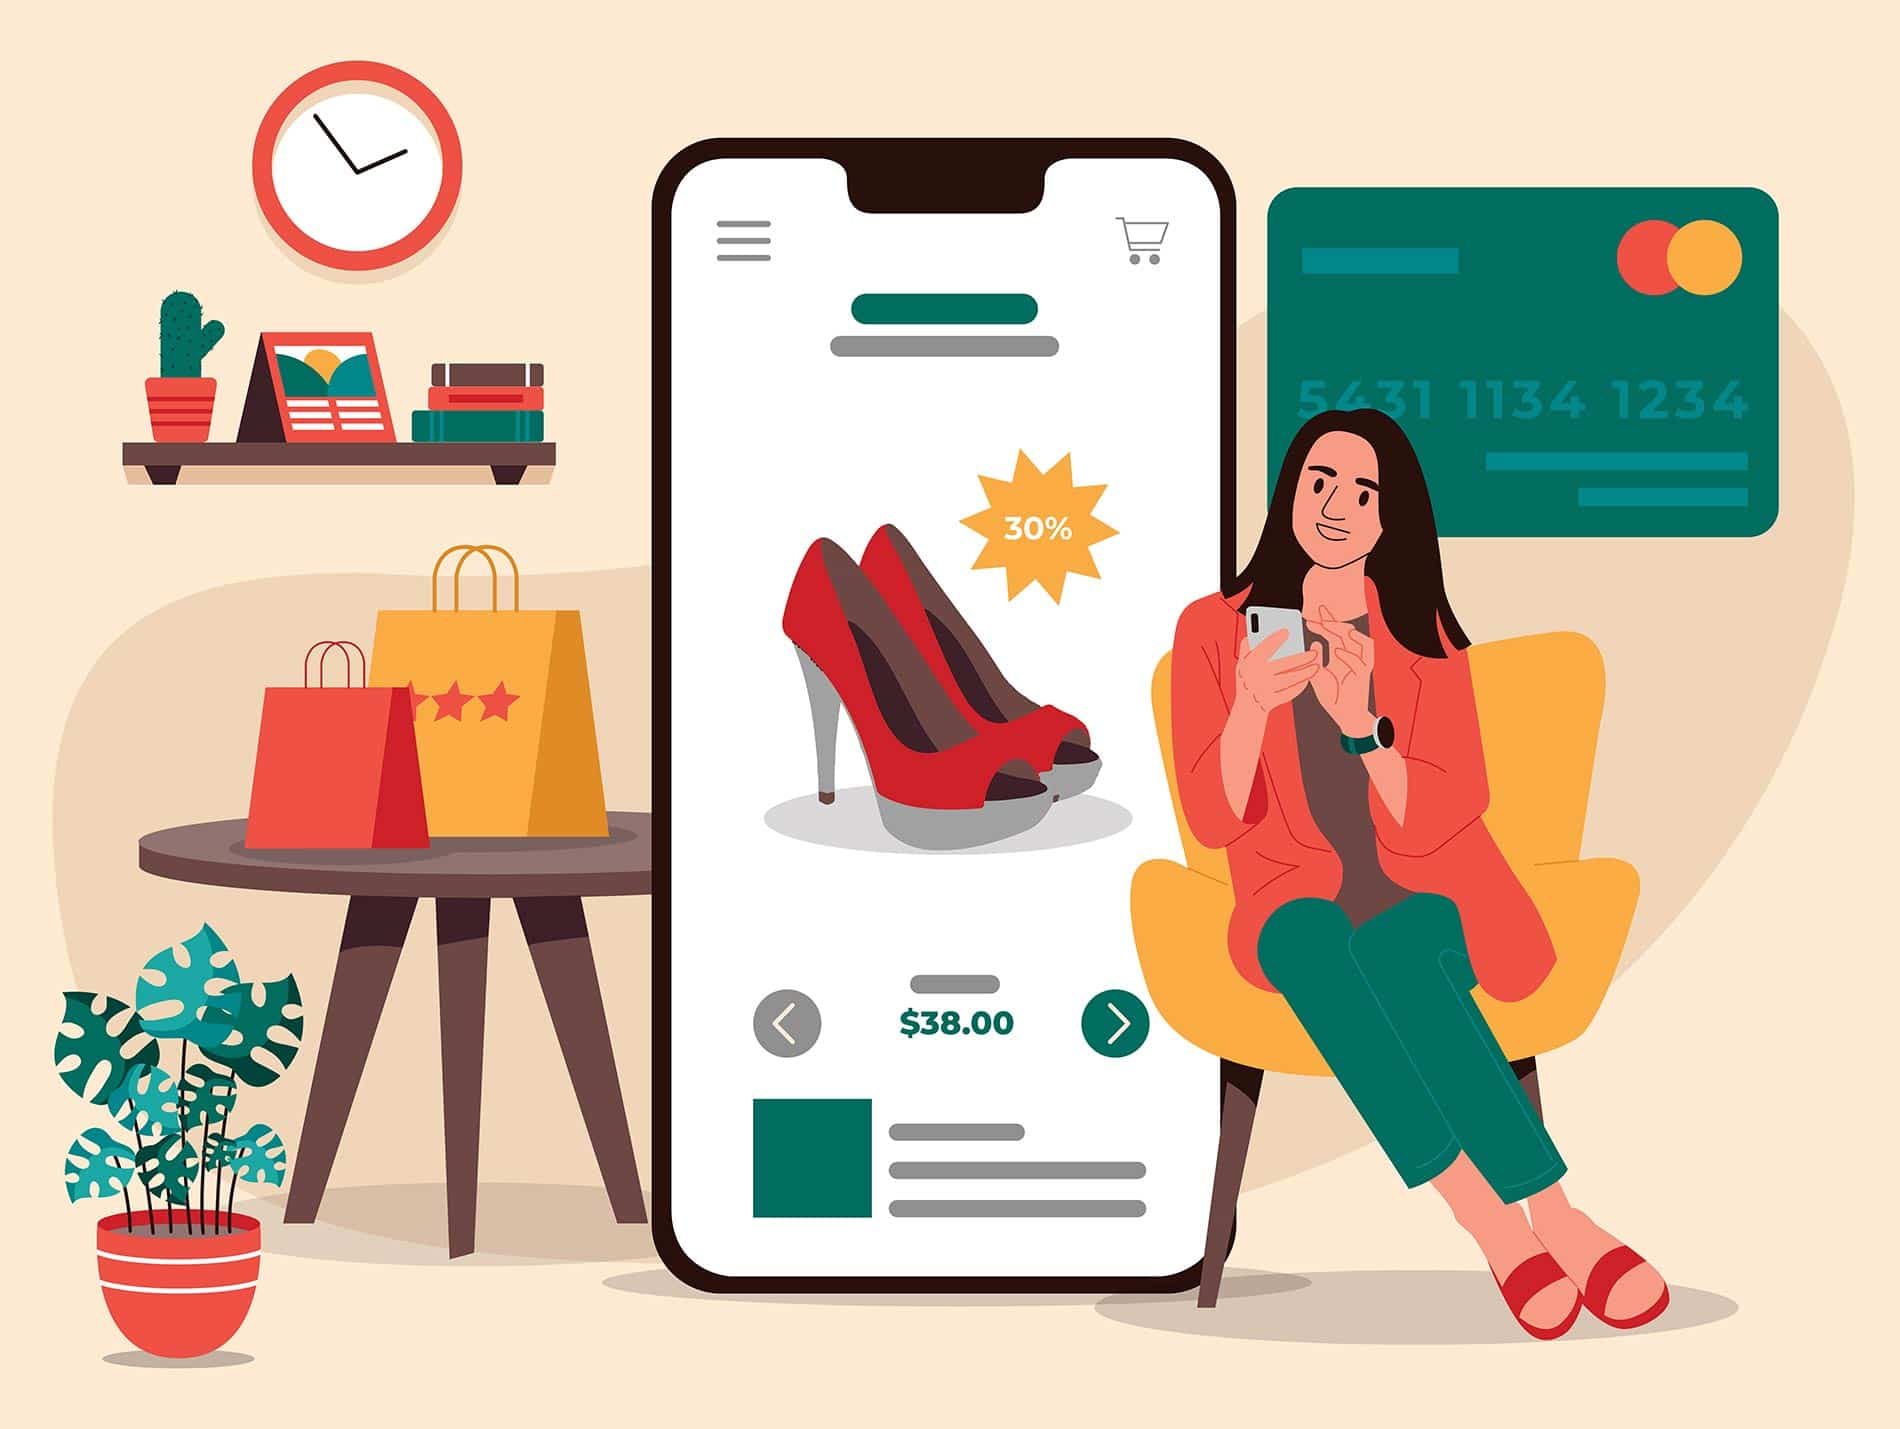 Women shopping online looking for offers